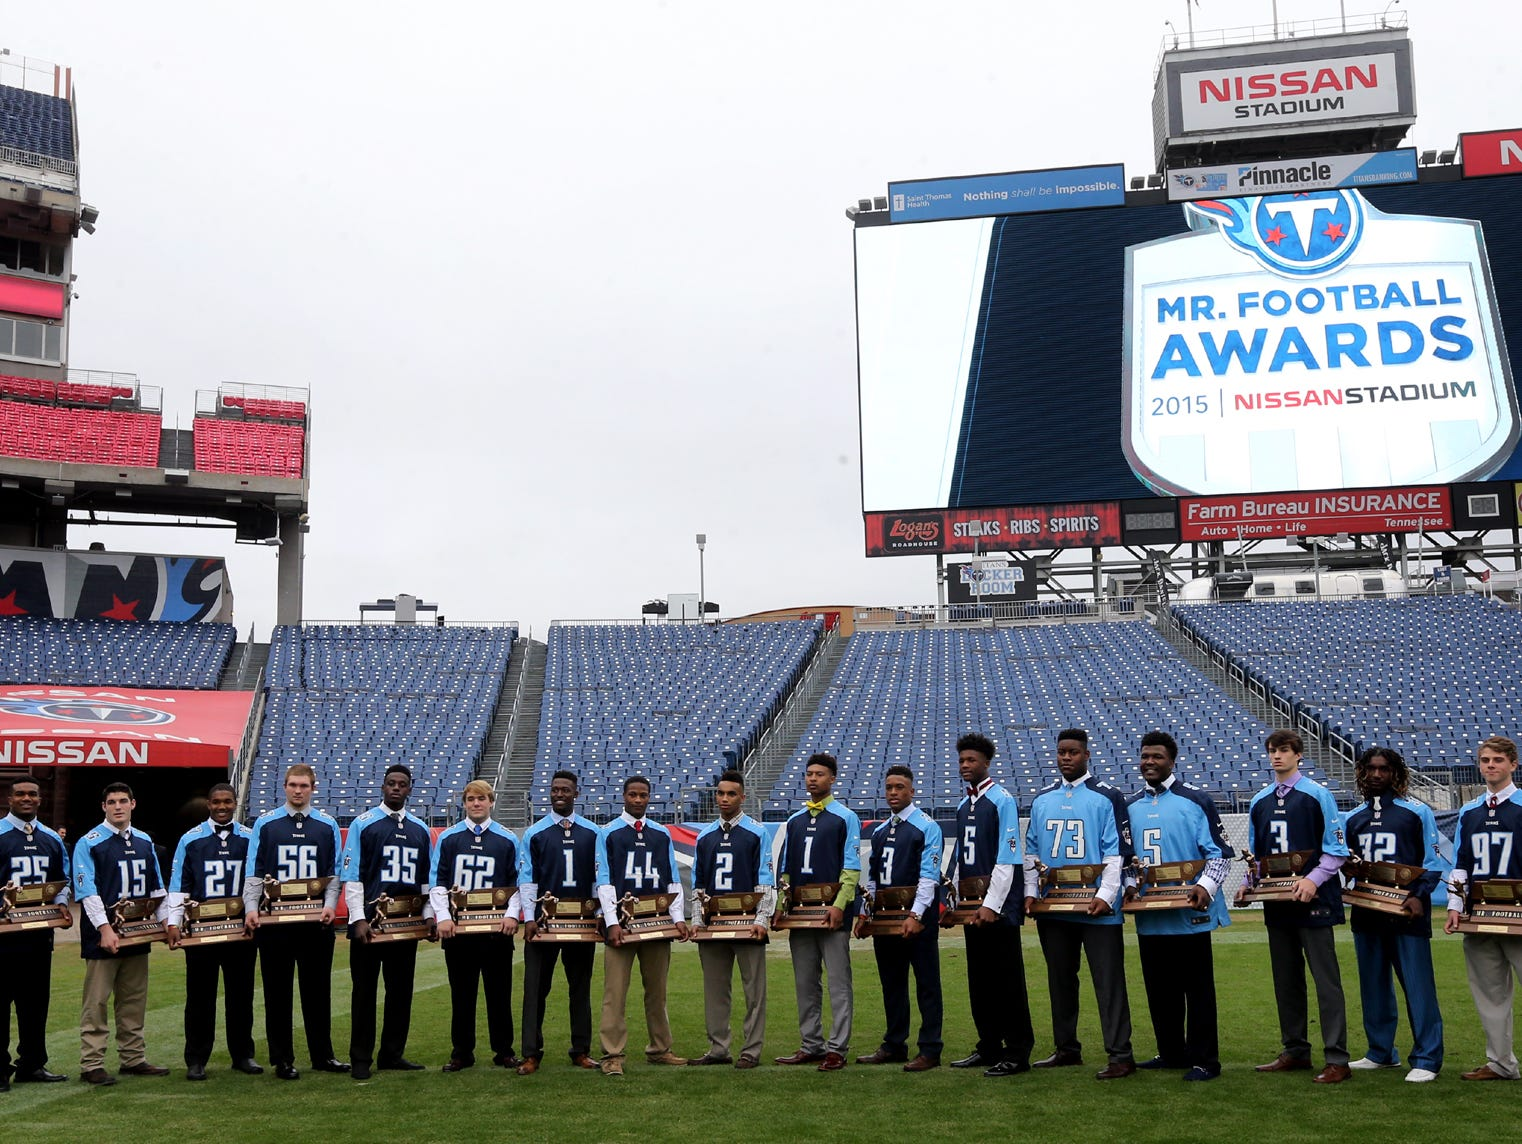 The 2015 Tennesseee Titatns Mr. Football Award winners on the Nissan Stadium Titans football field gather for an photograph after the ceremony Monday. The Mr. Football winners were given Titans jerseys with their High School number on the jersey.